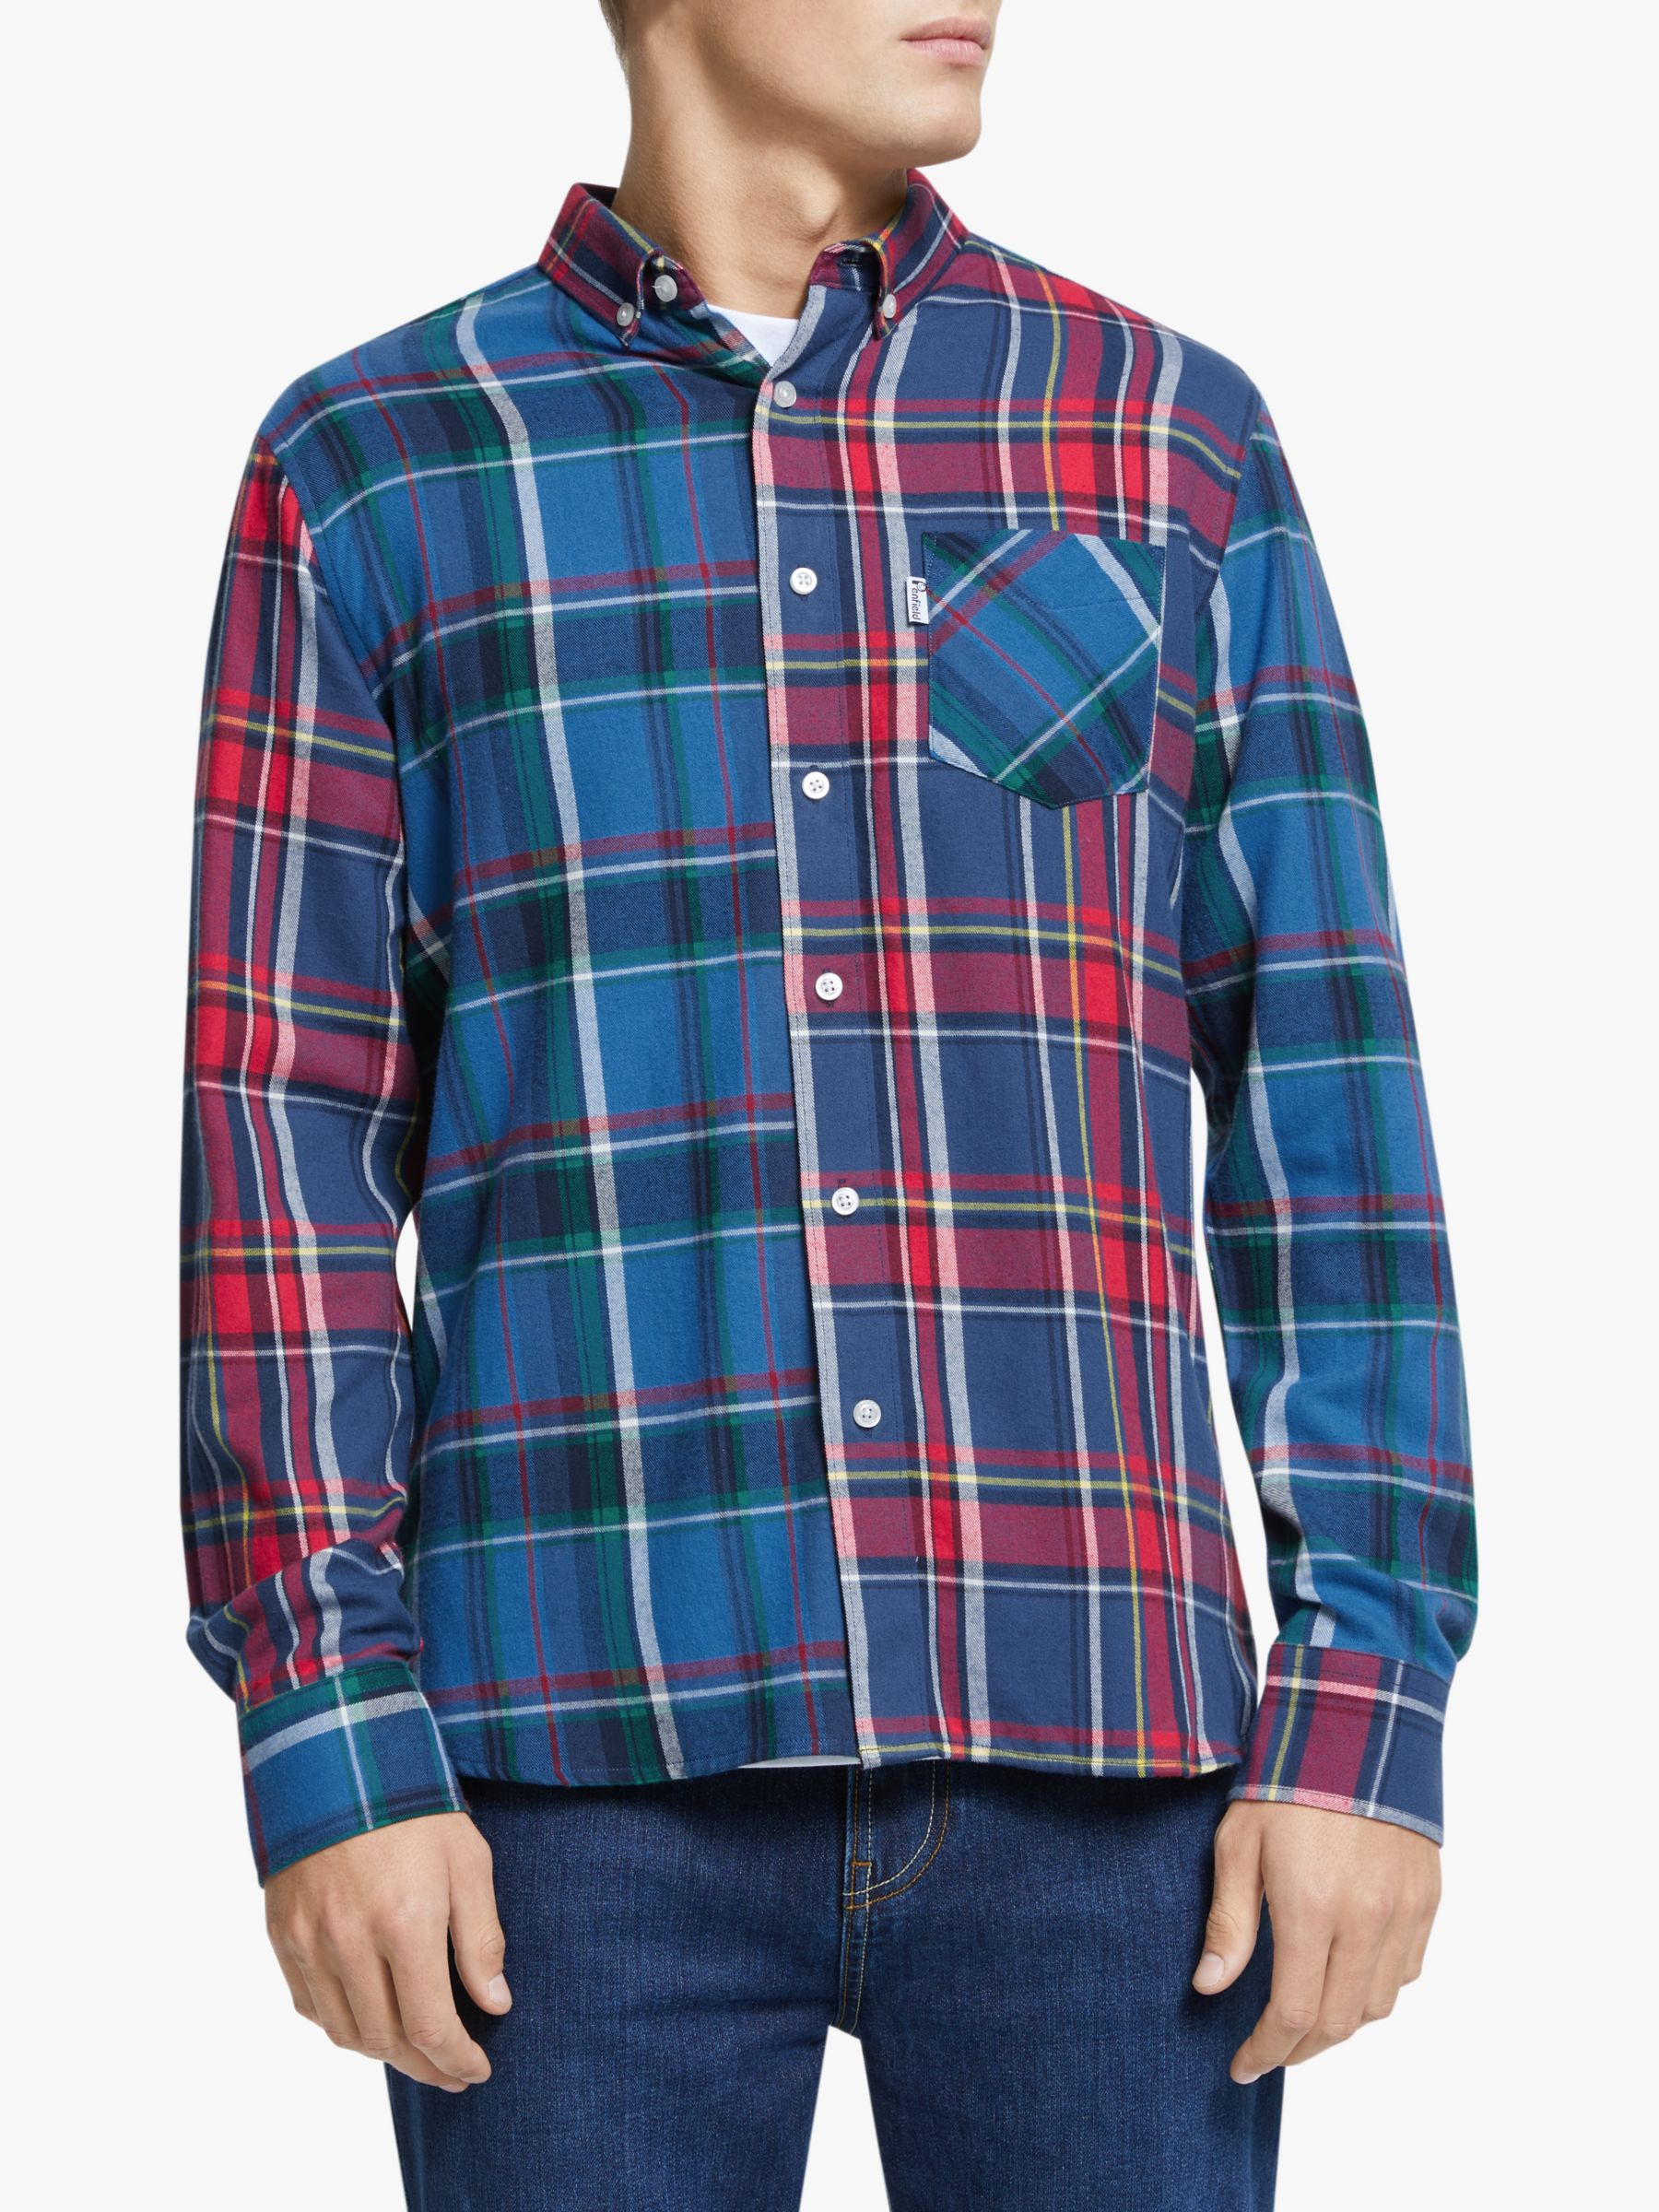 Penfield Penfield Barrhead Brushed Yarn Dyed Cotton Flannel Shirt, Blue Check